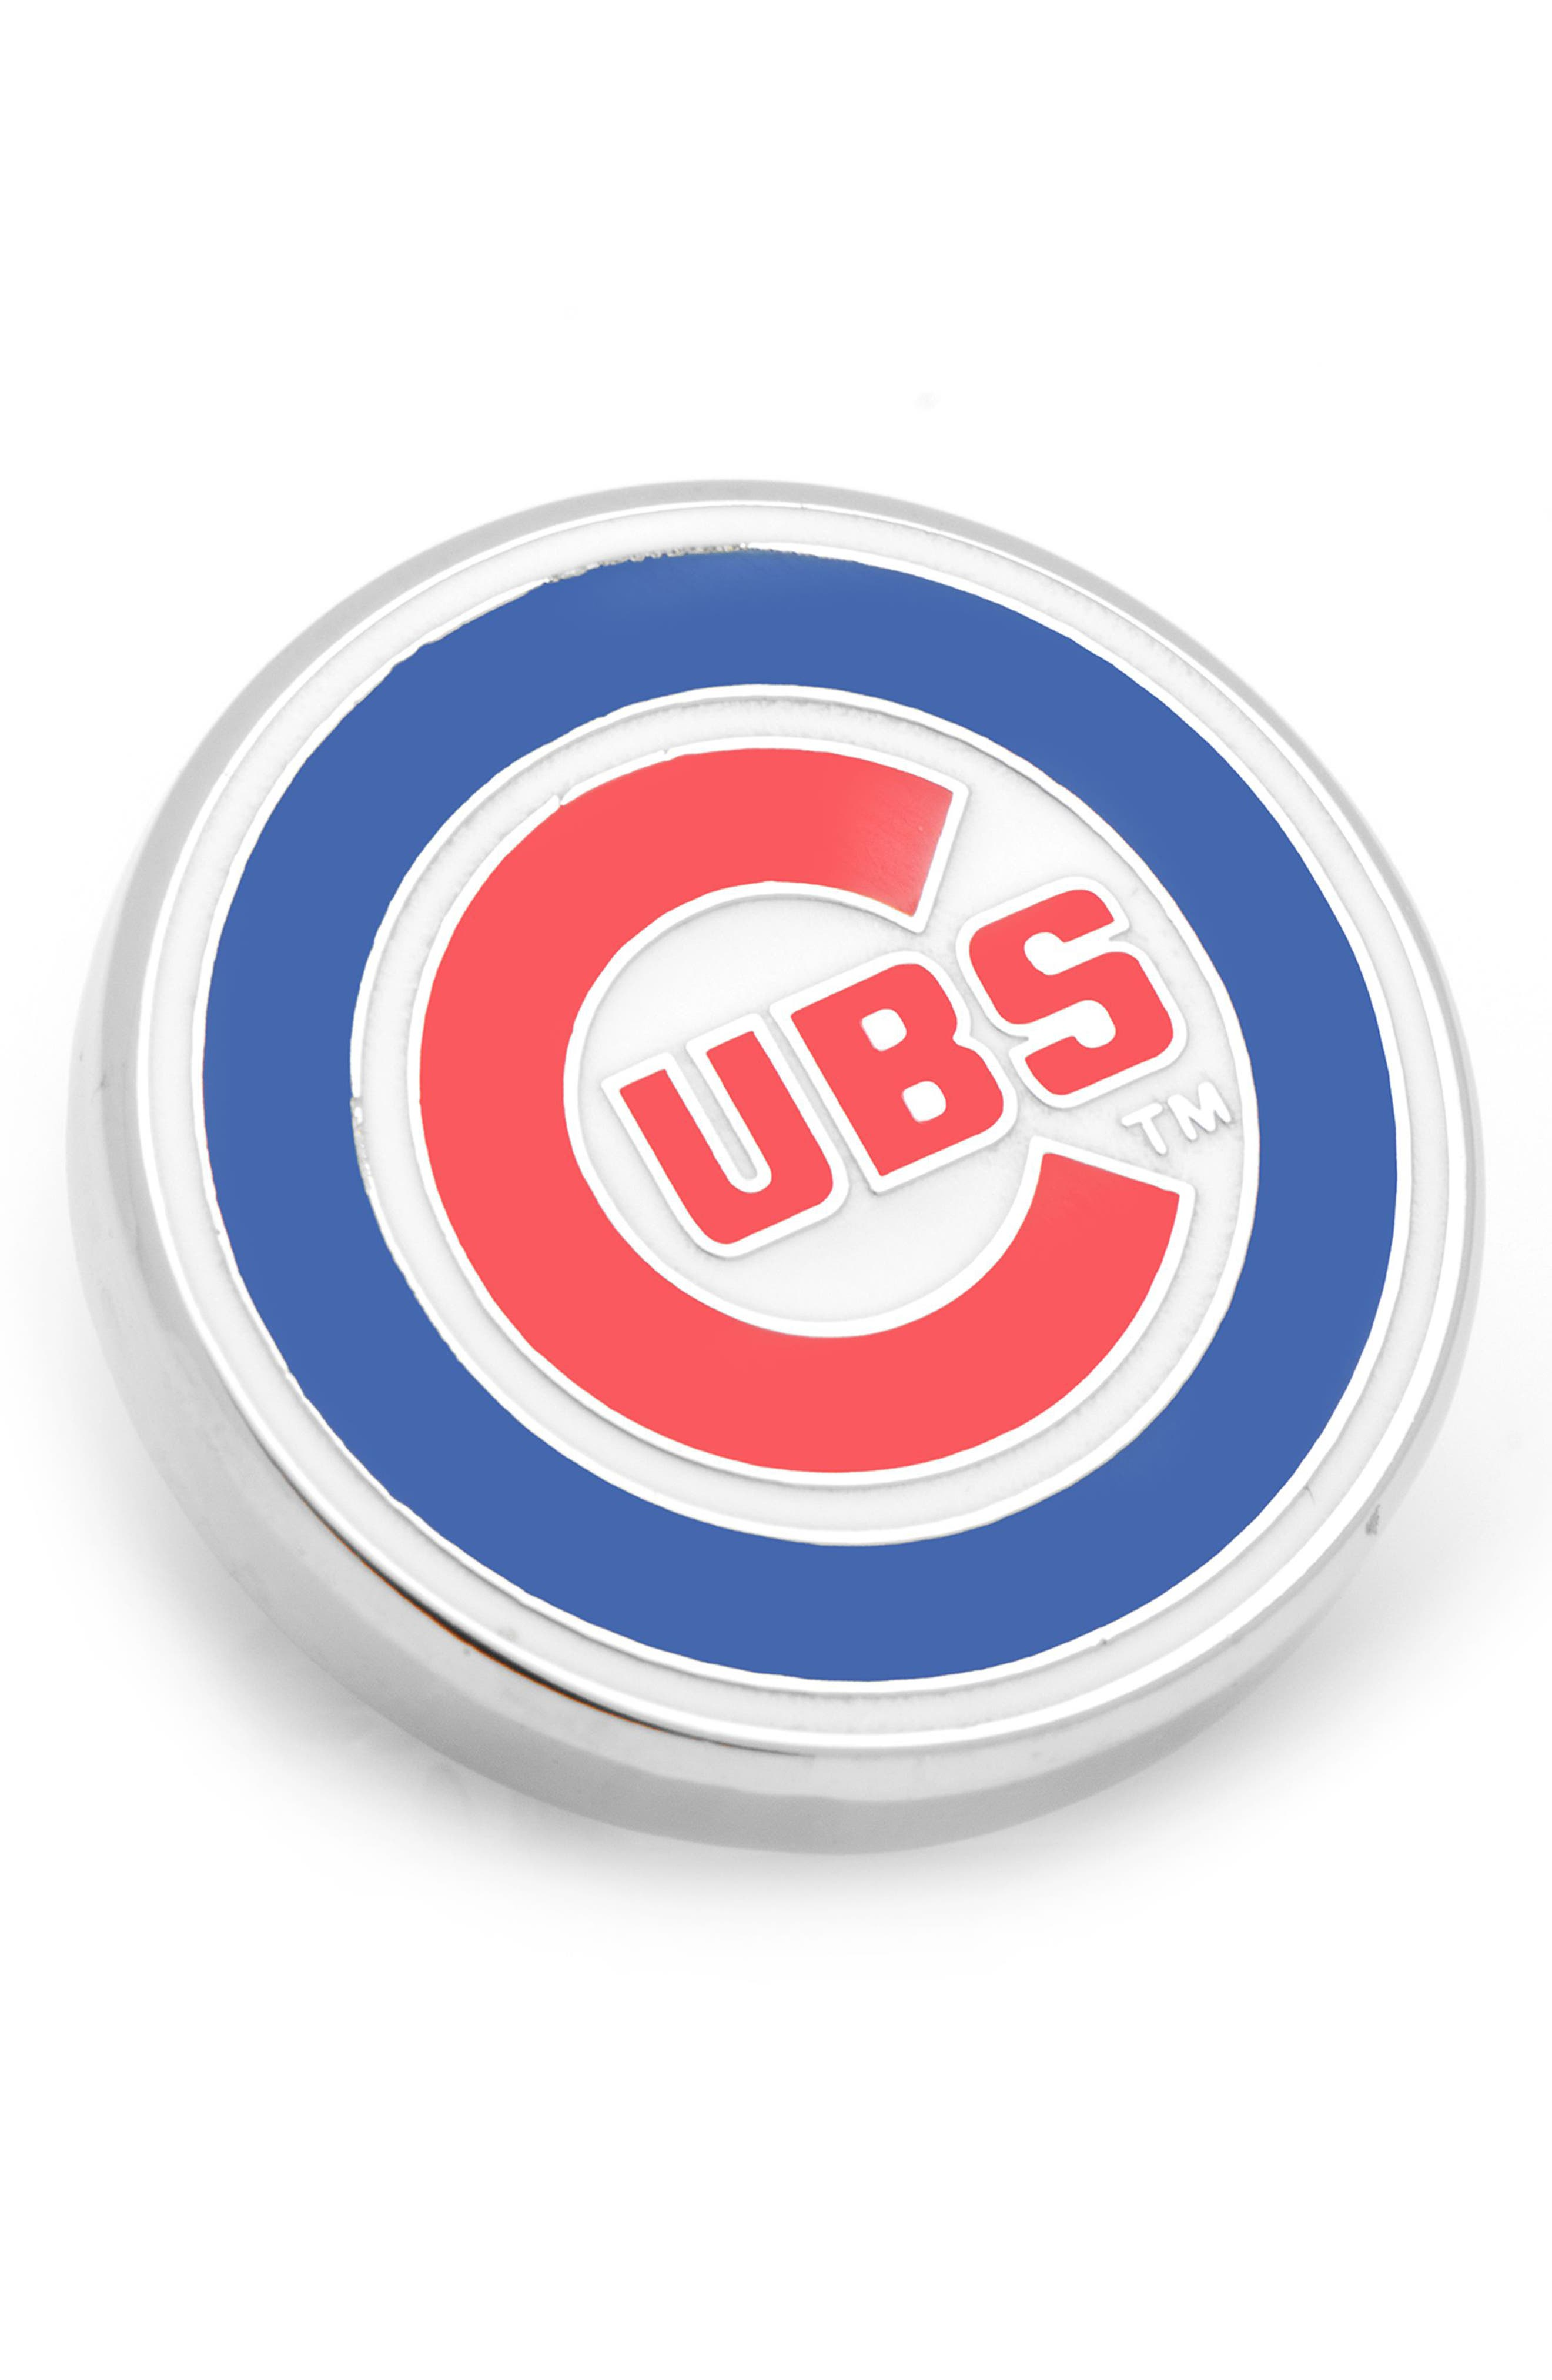 Chicago Cubs Lapel Pin,                         Main,                         color, BLUE/ RED